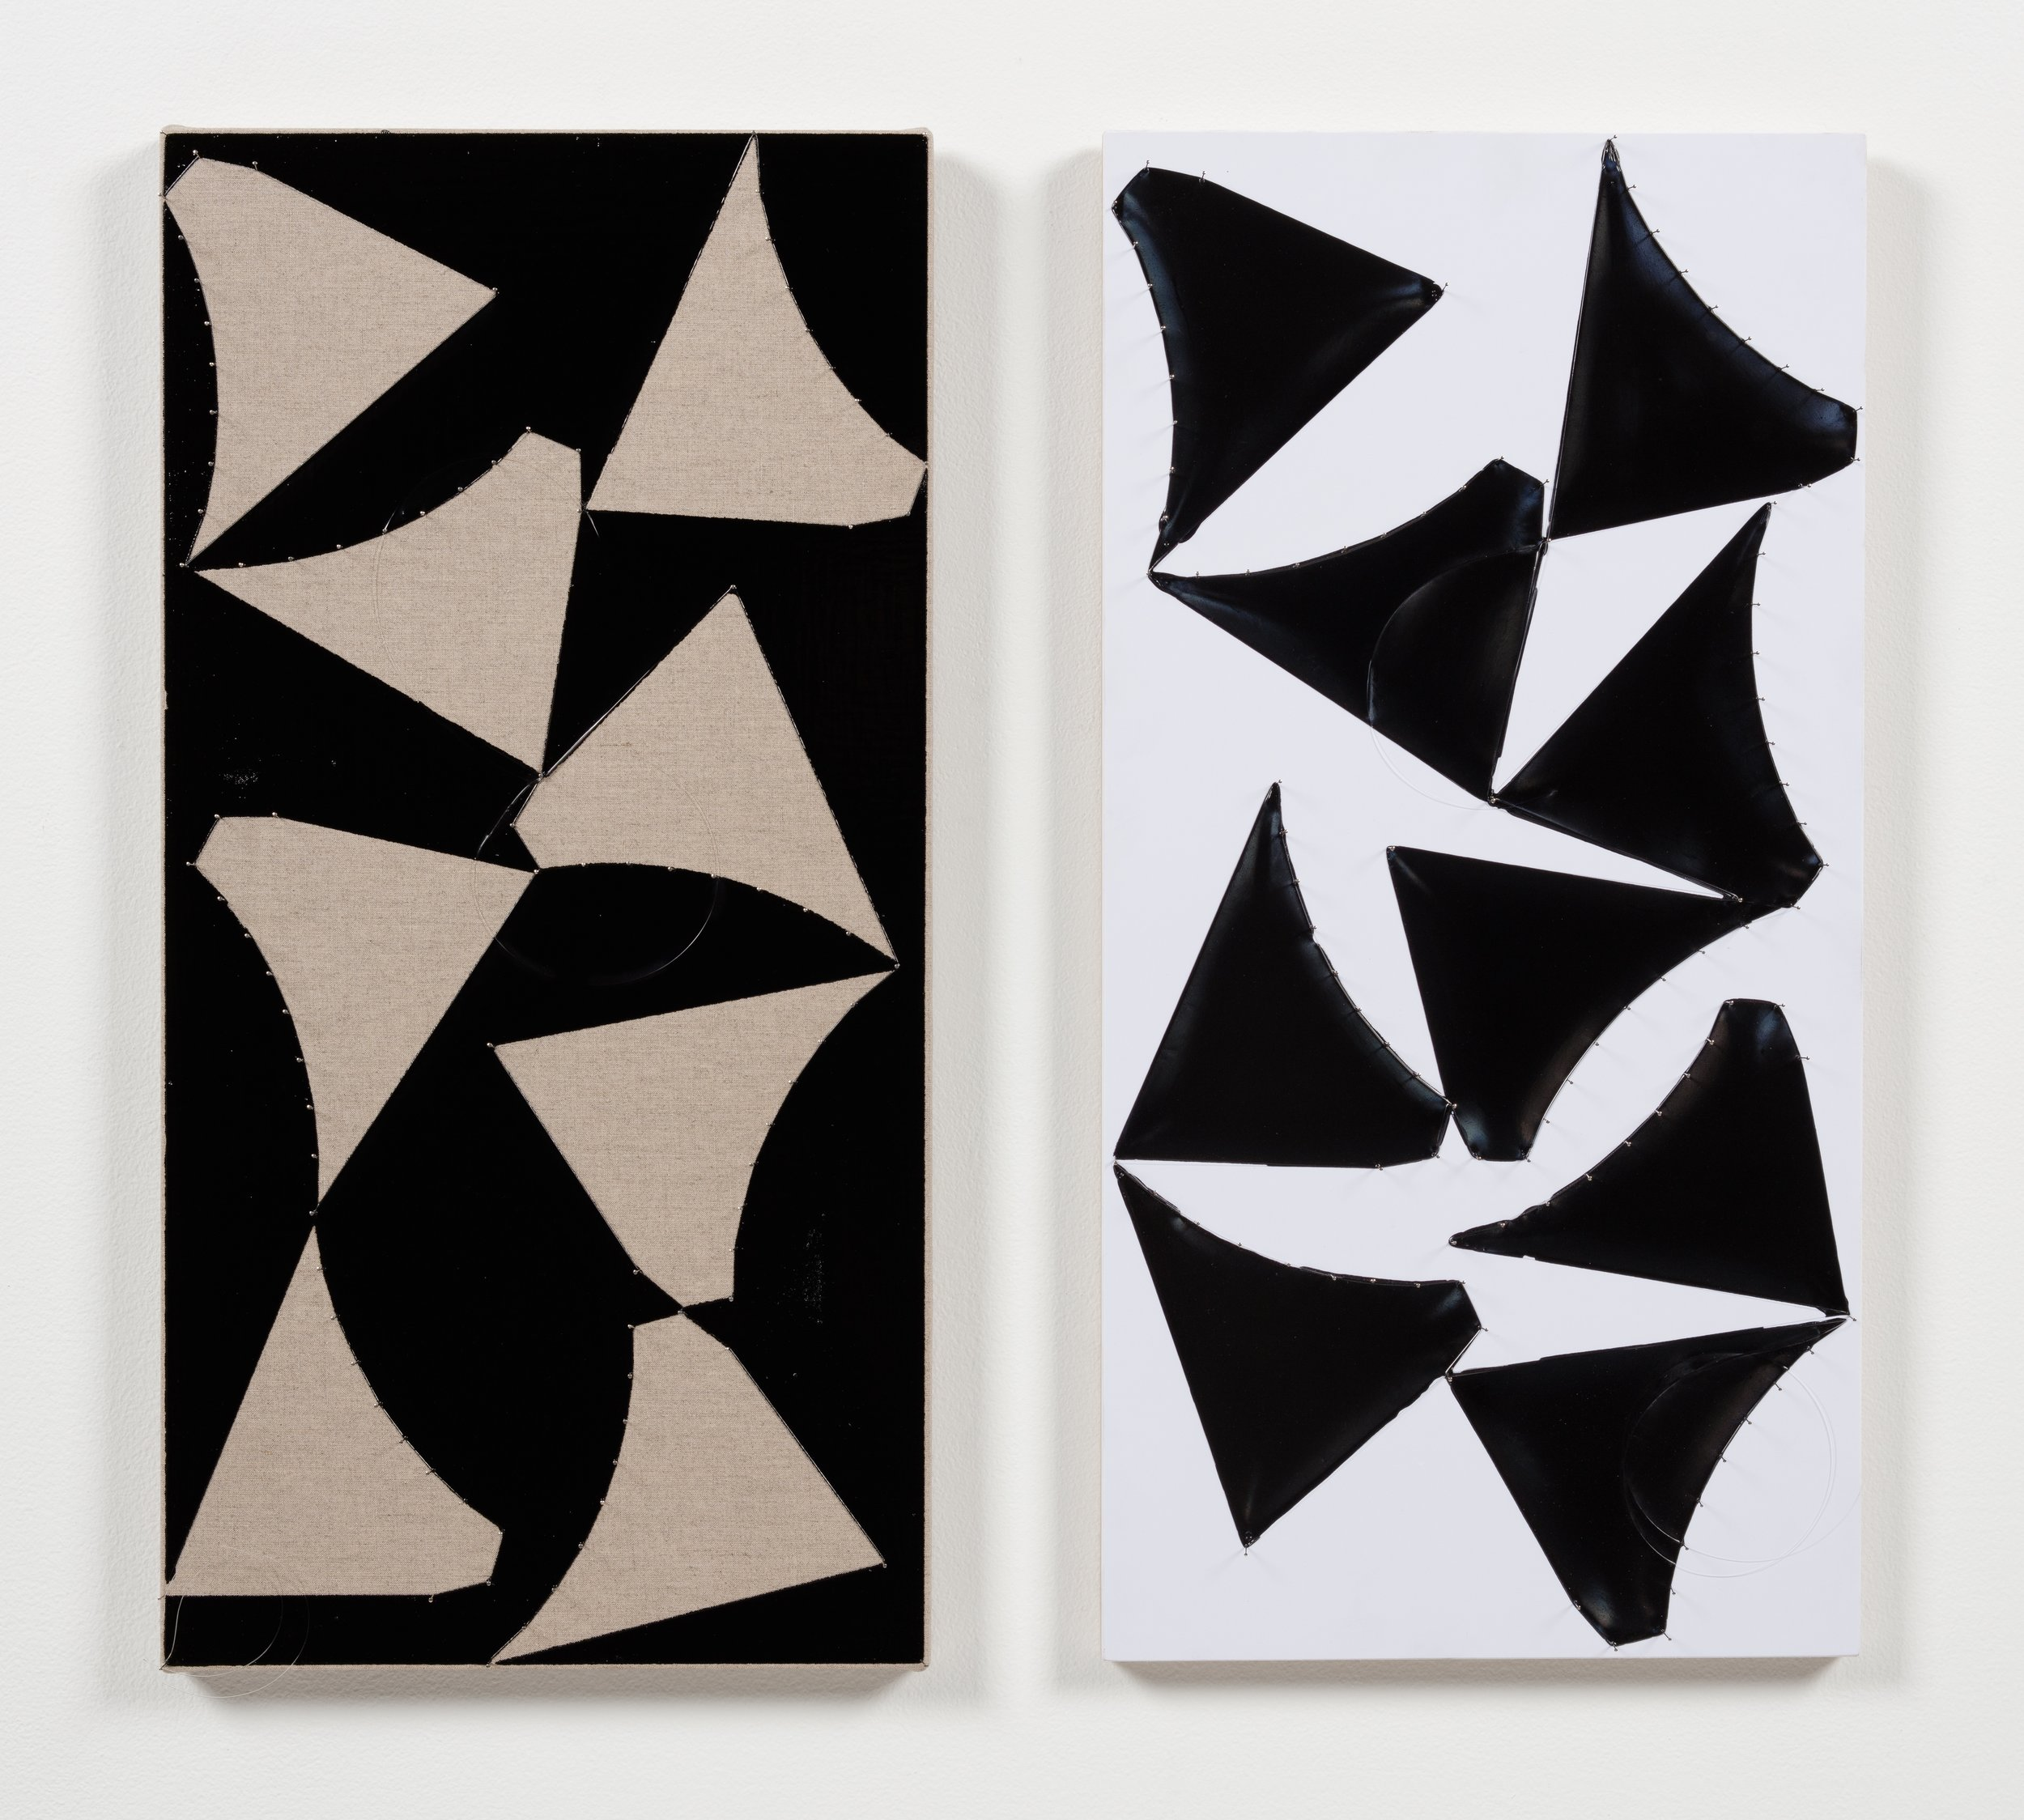 Touching Work Templates, Second Shape IV.II, 2018